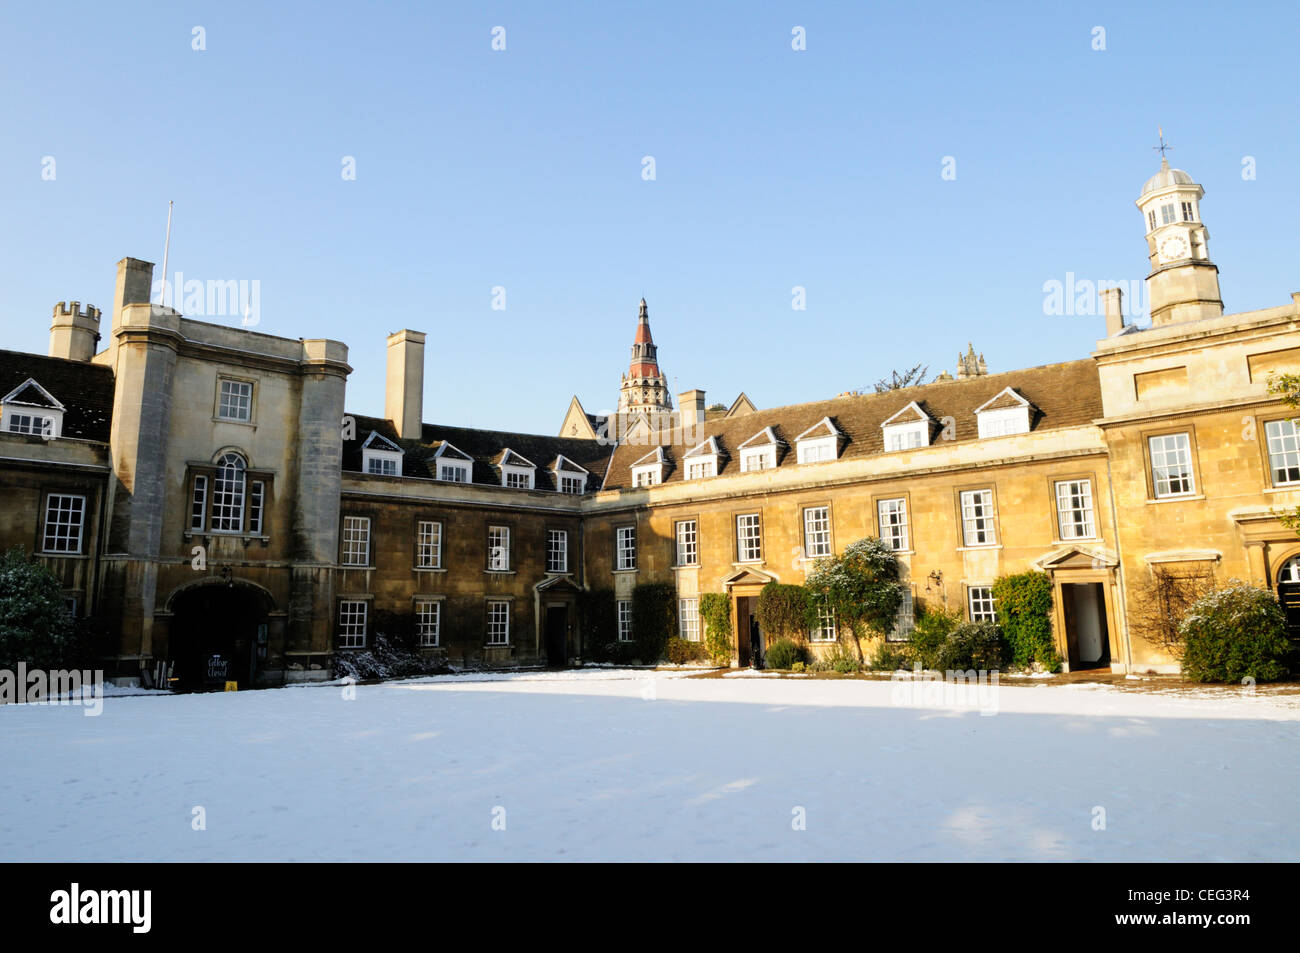 Christs College in Winter, Cambridge, England, UK - Stock Image